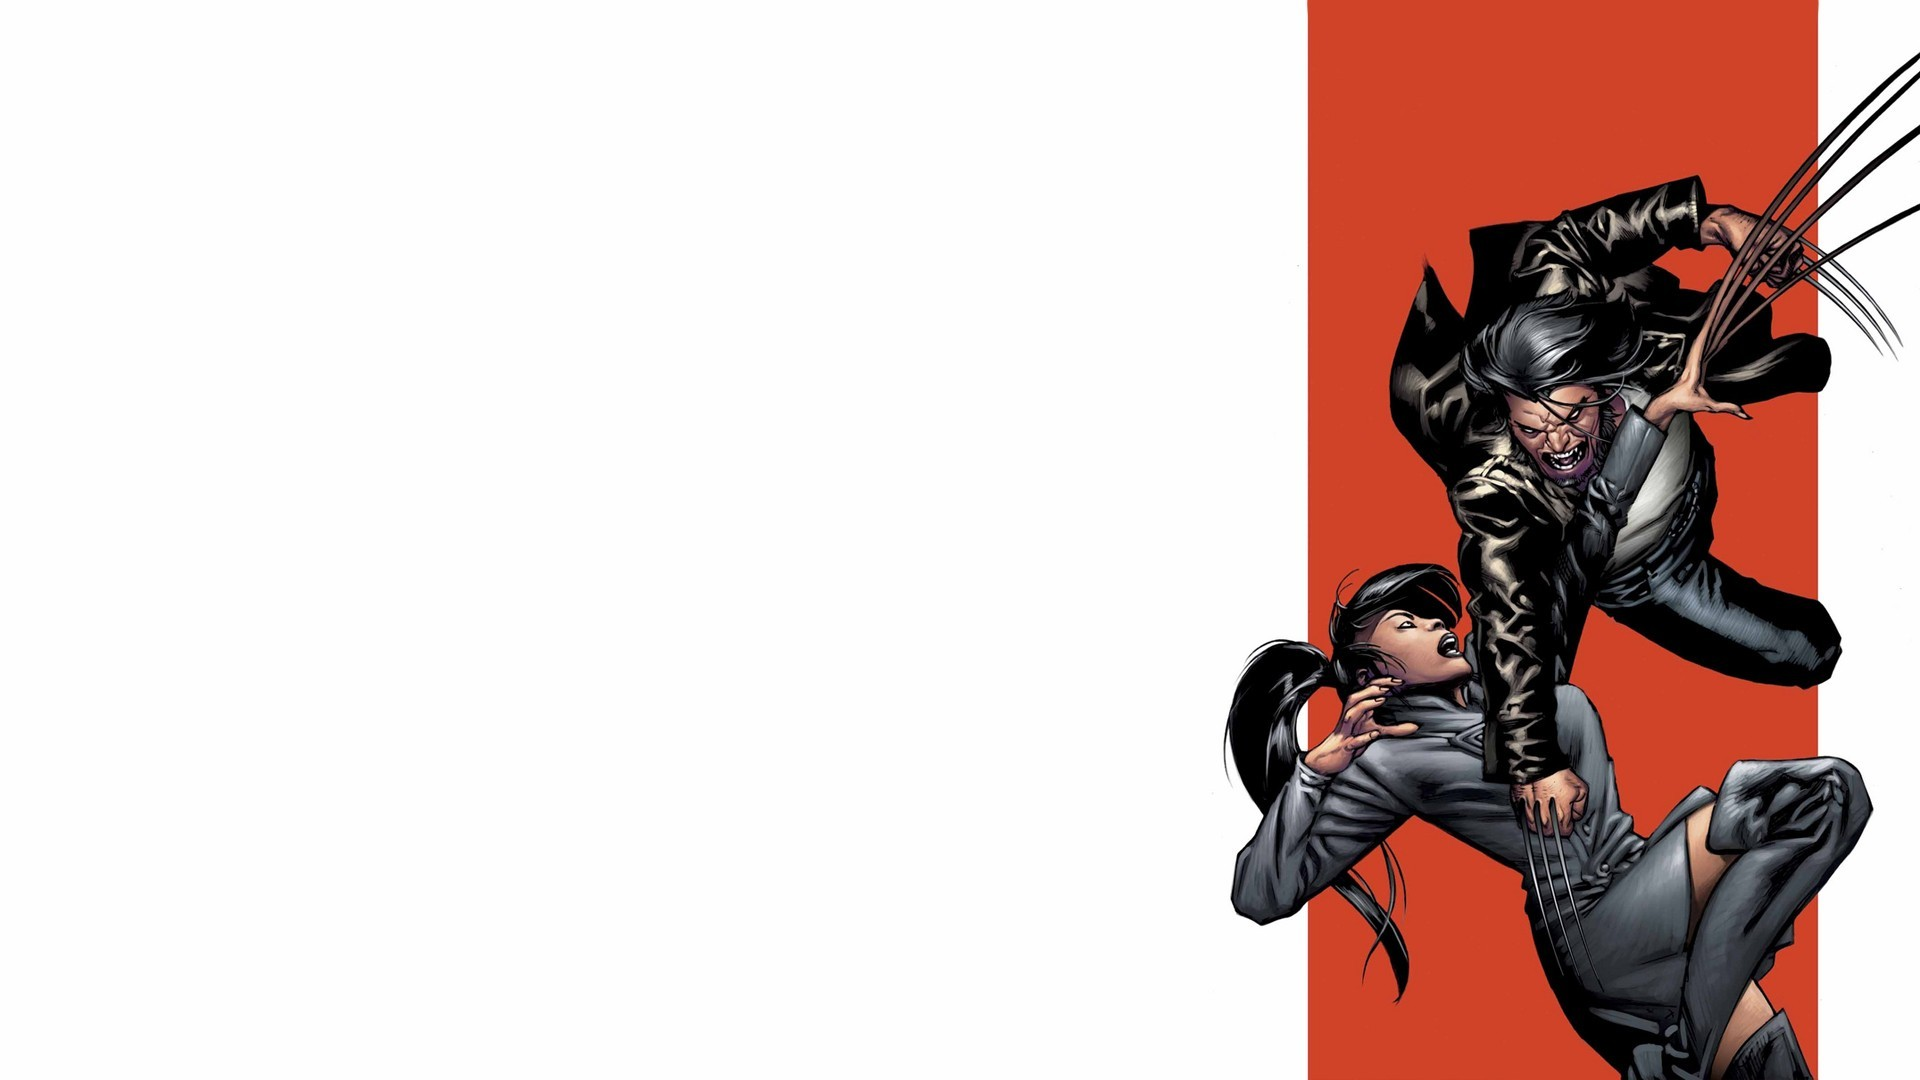 Images of Wolverine Comics Wallpapers Hd - #SC